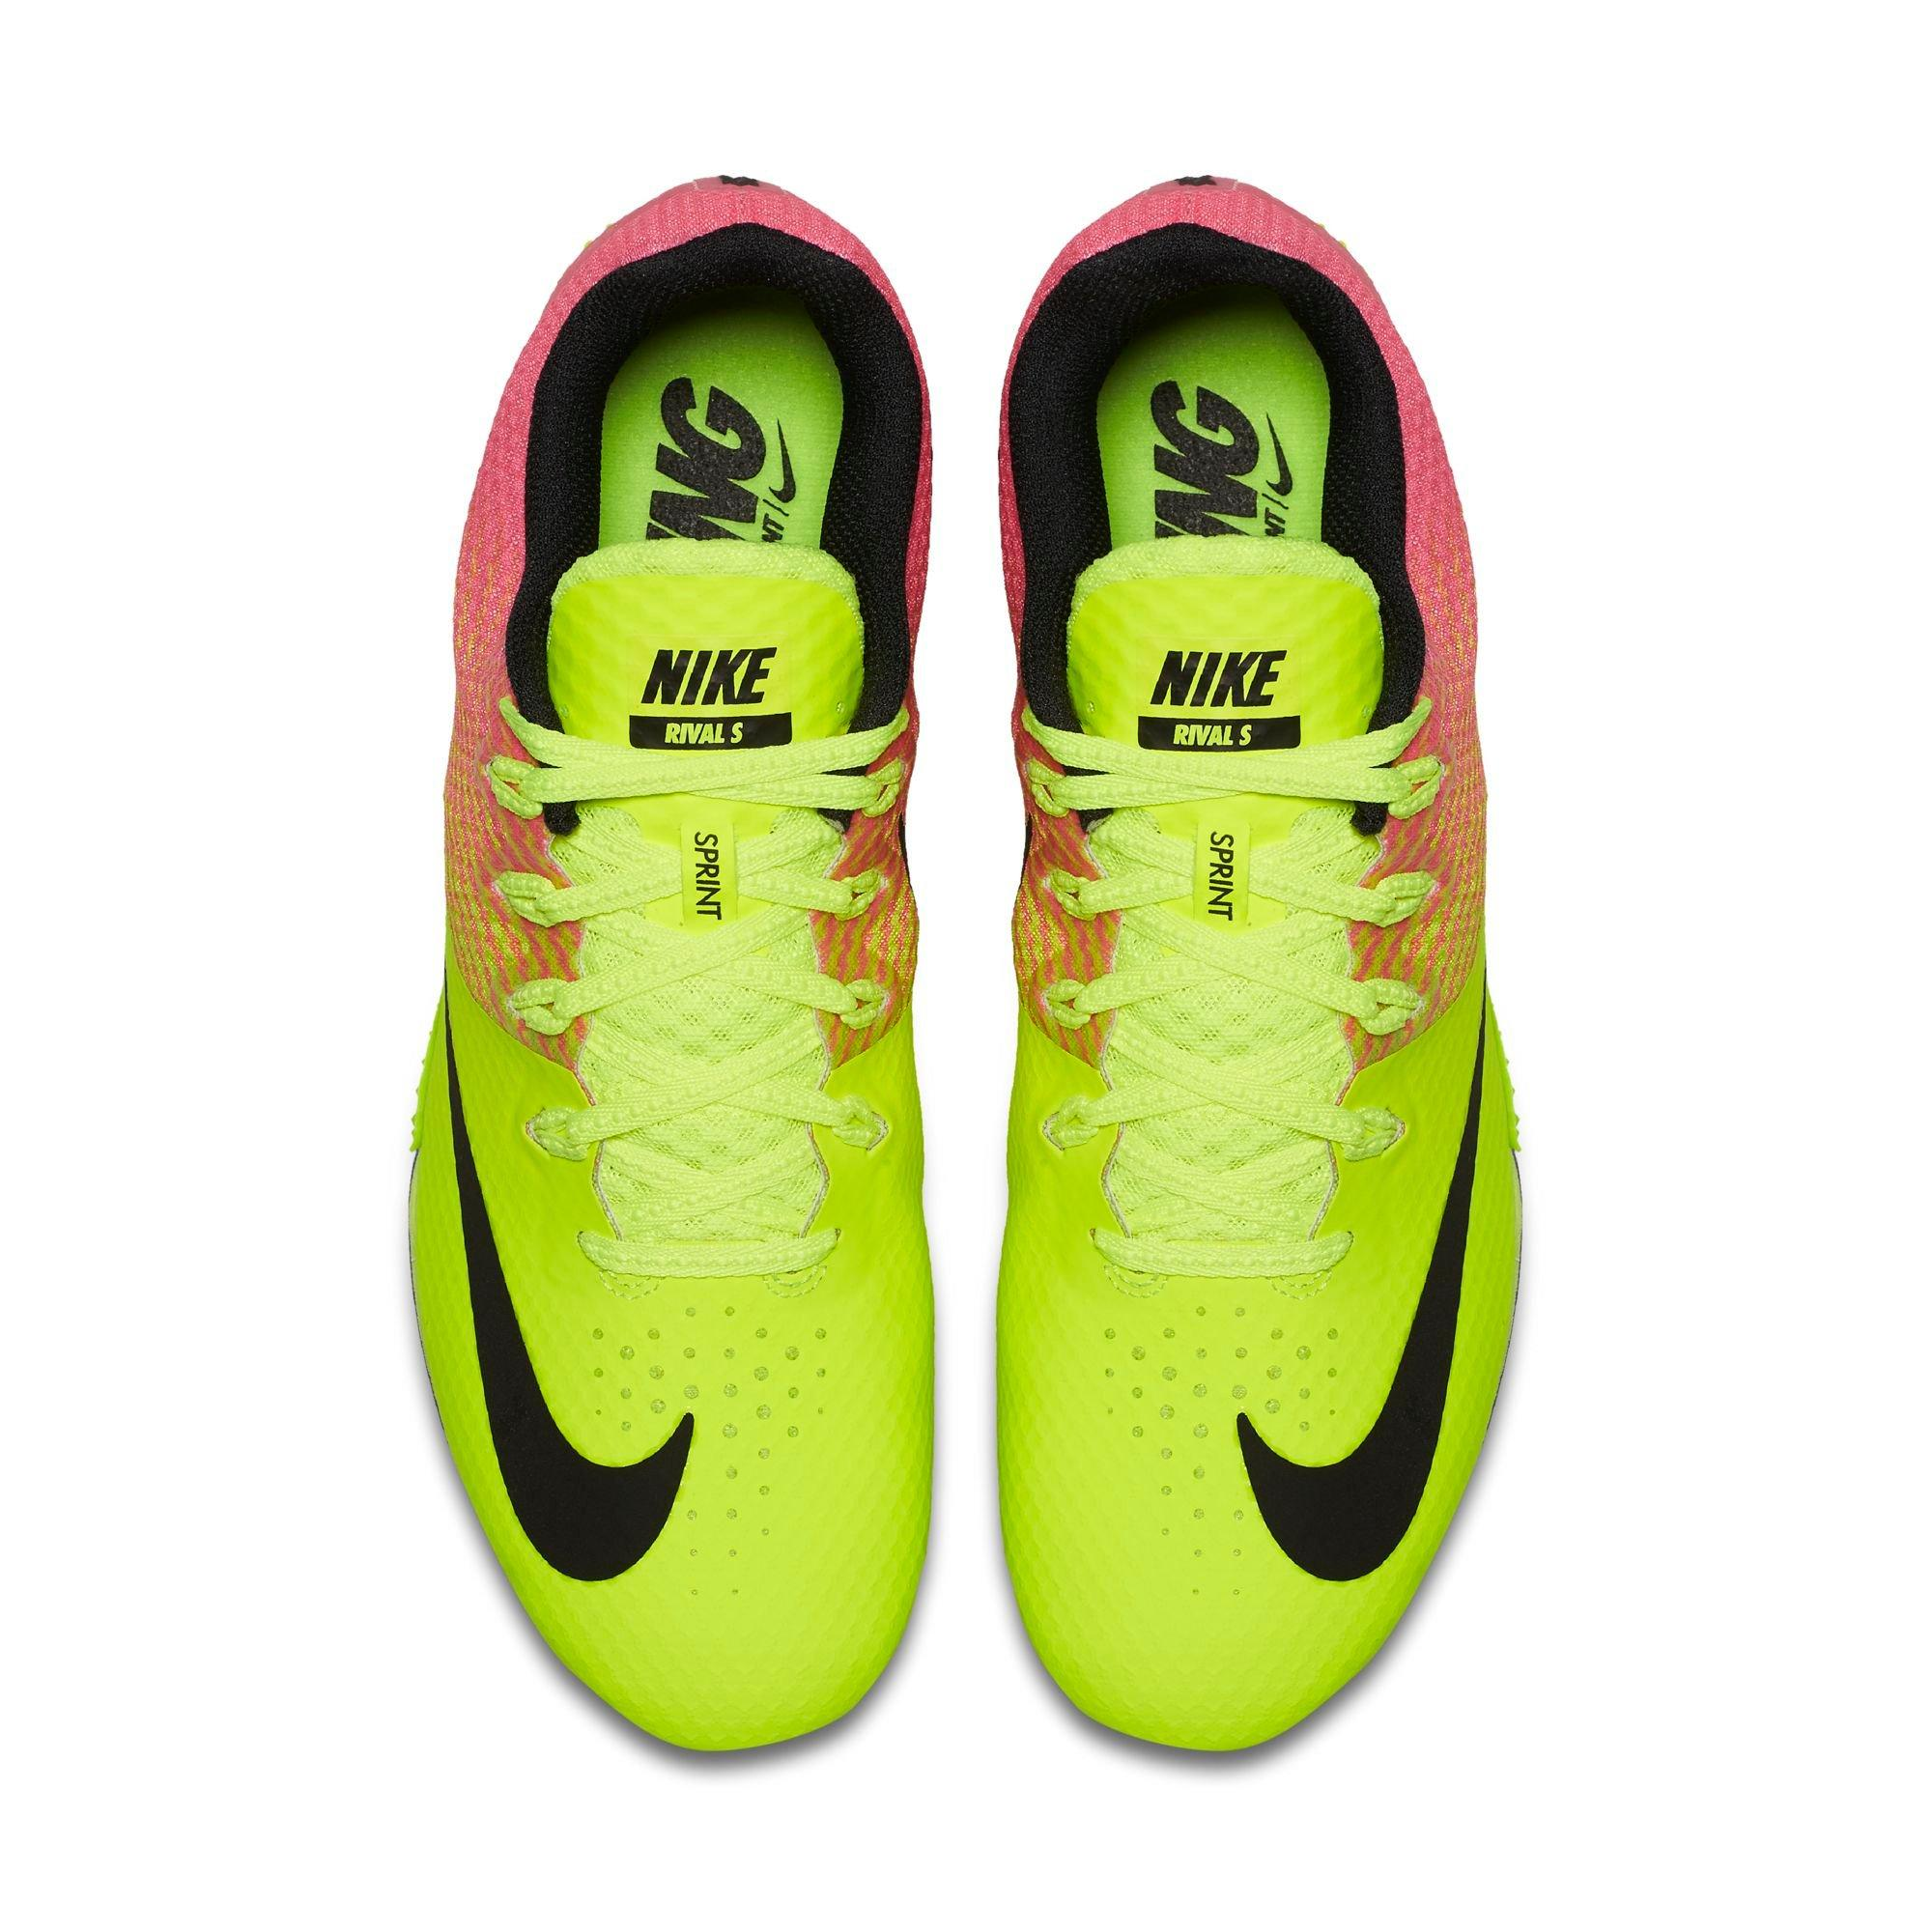 6690e67a7ce39 Kids Nike Track Shoes Spikes